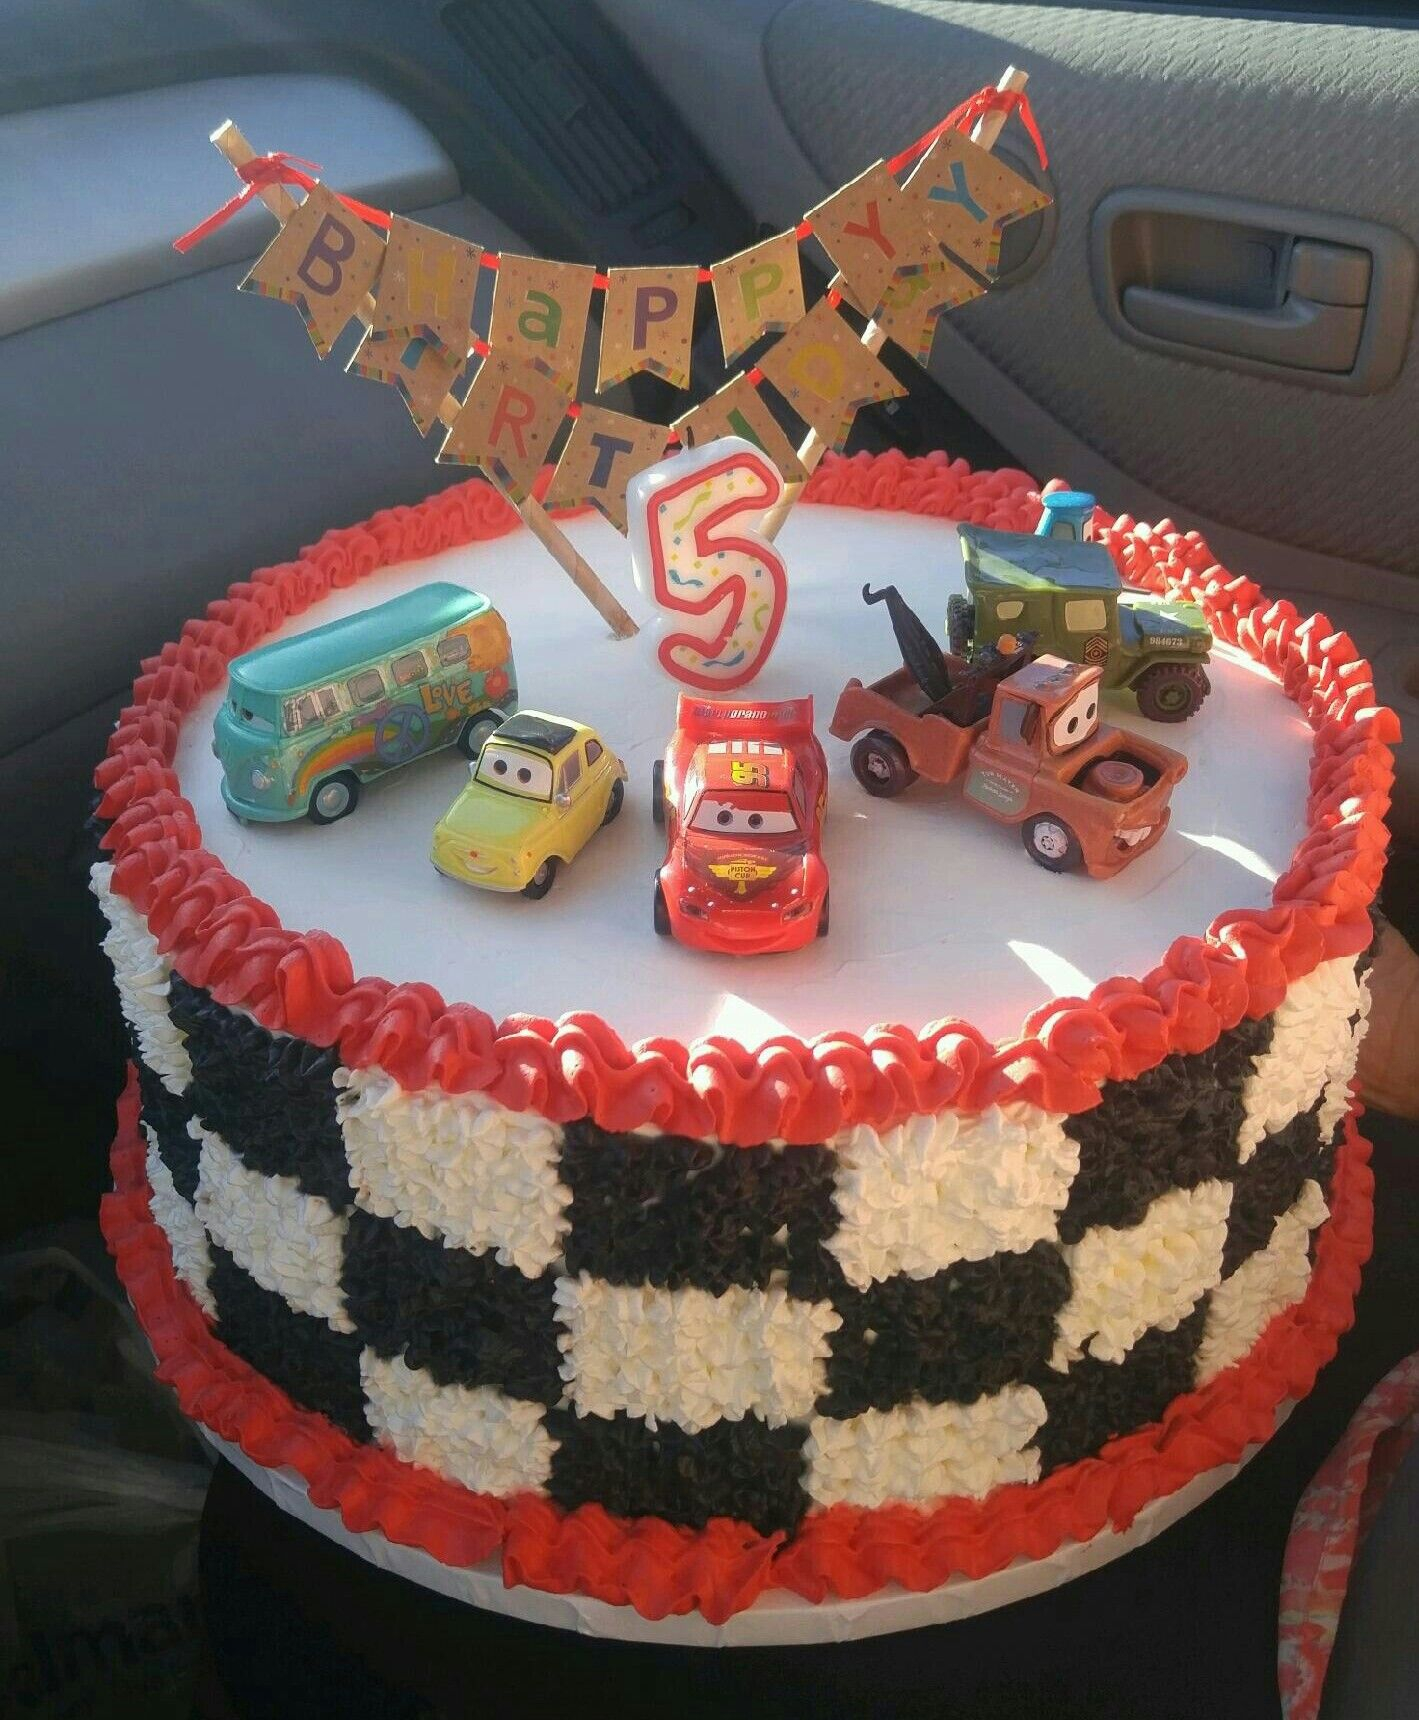 Disney Cars Birthday Cake Birthday Cake Disney Cars Cake My Homemade Cakes Birthday